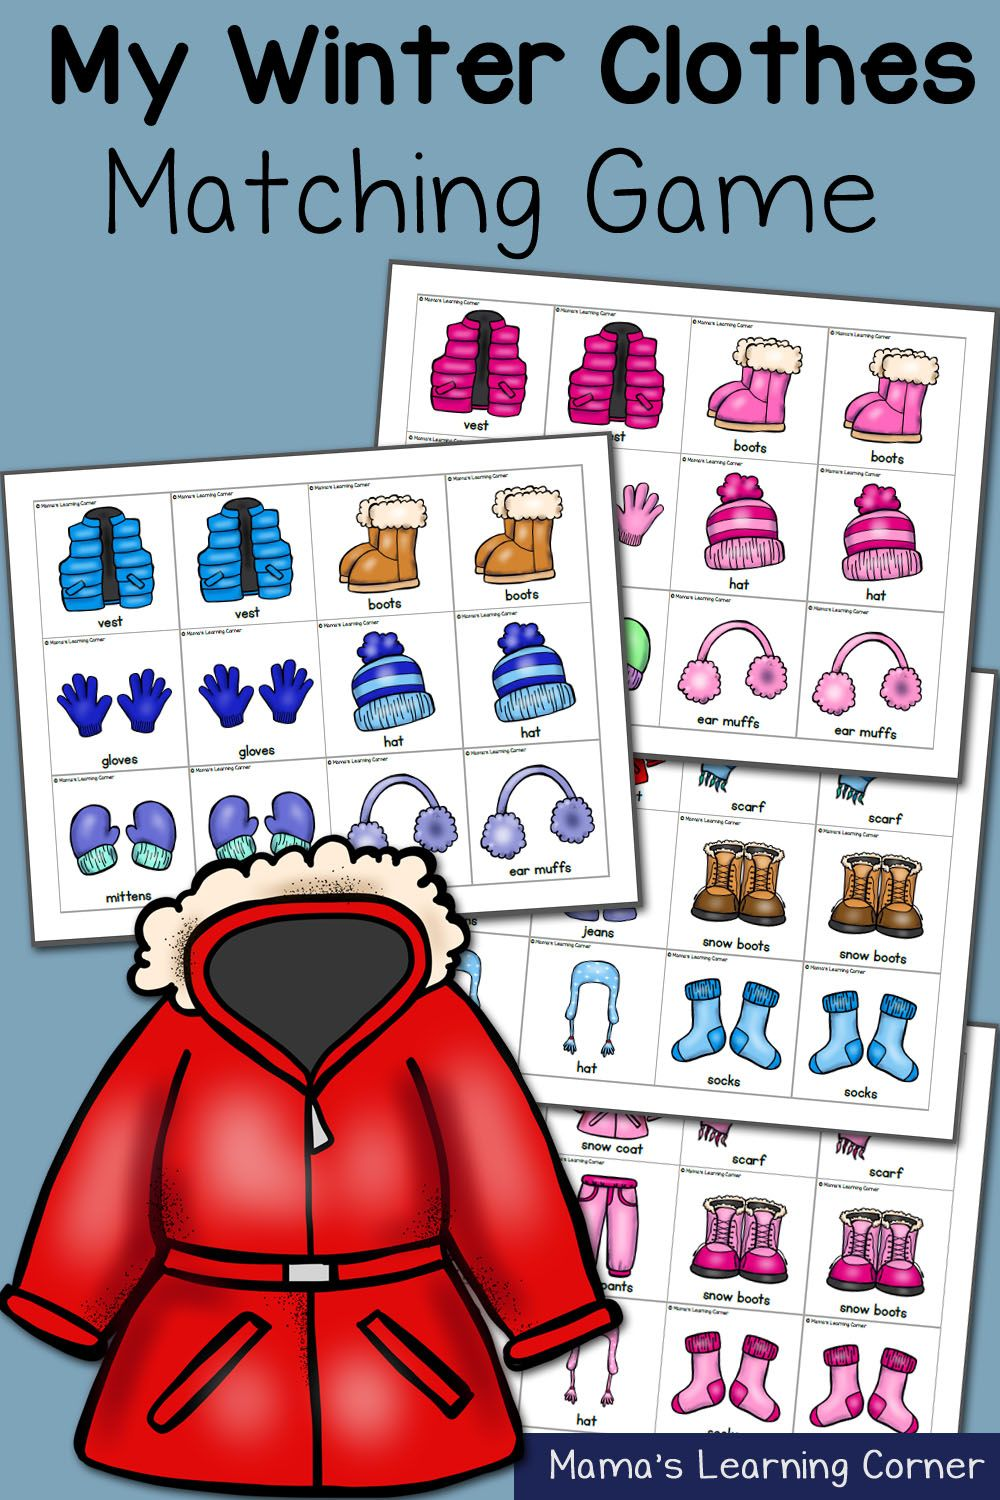 Printable color matching games for preschoolers - My Winter Clothes Match Game